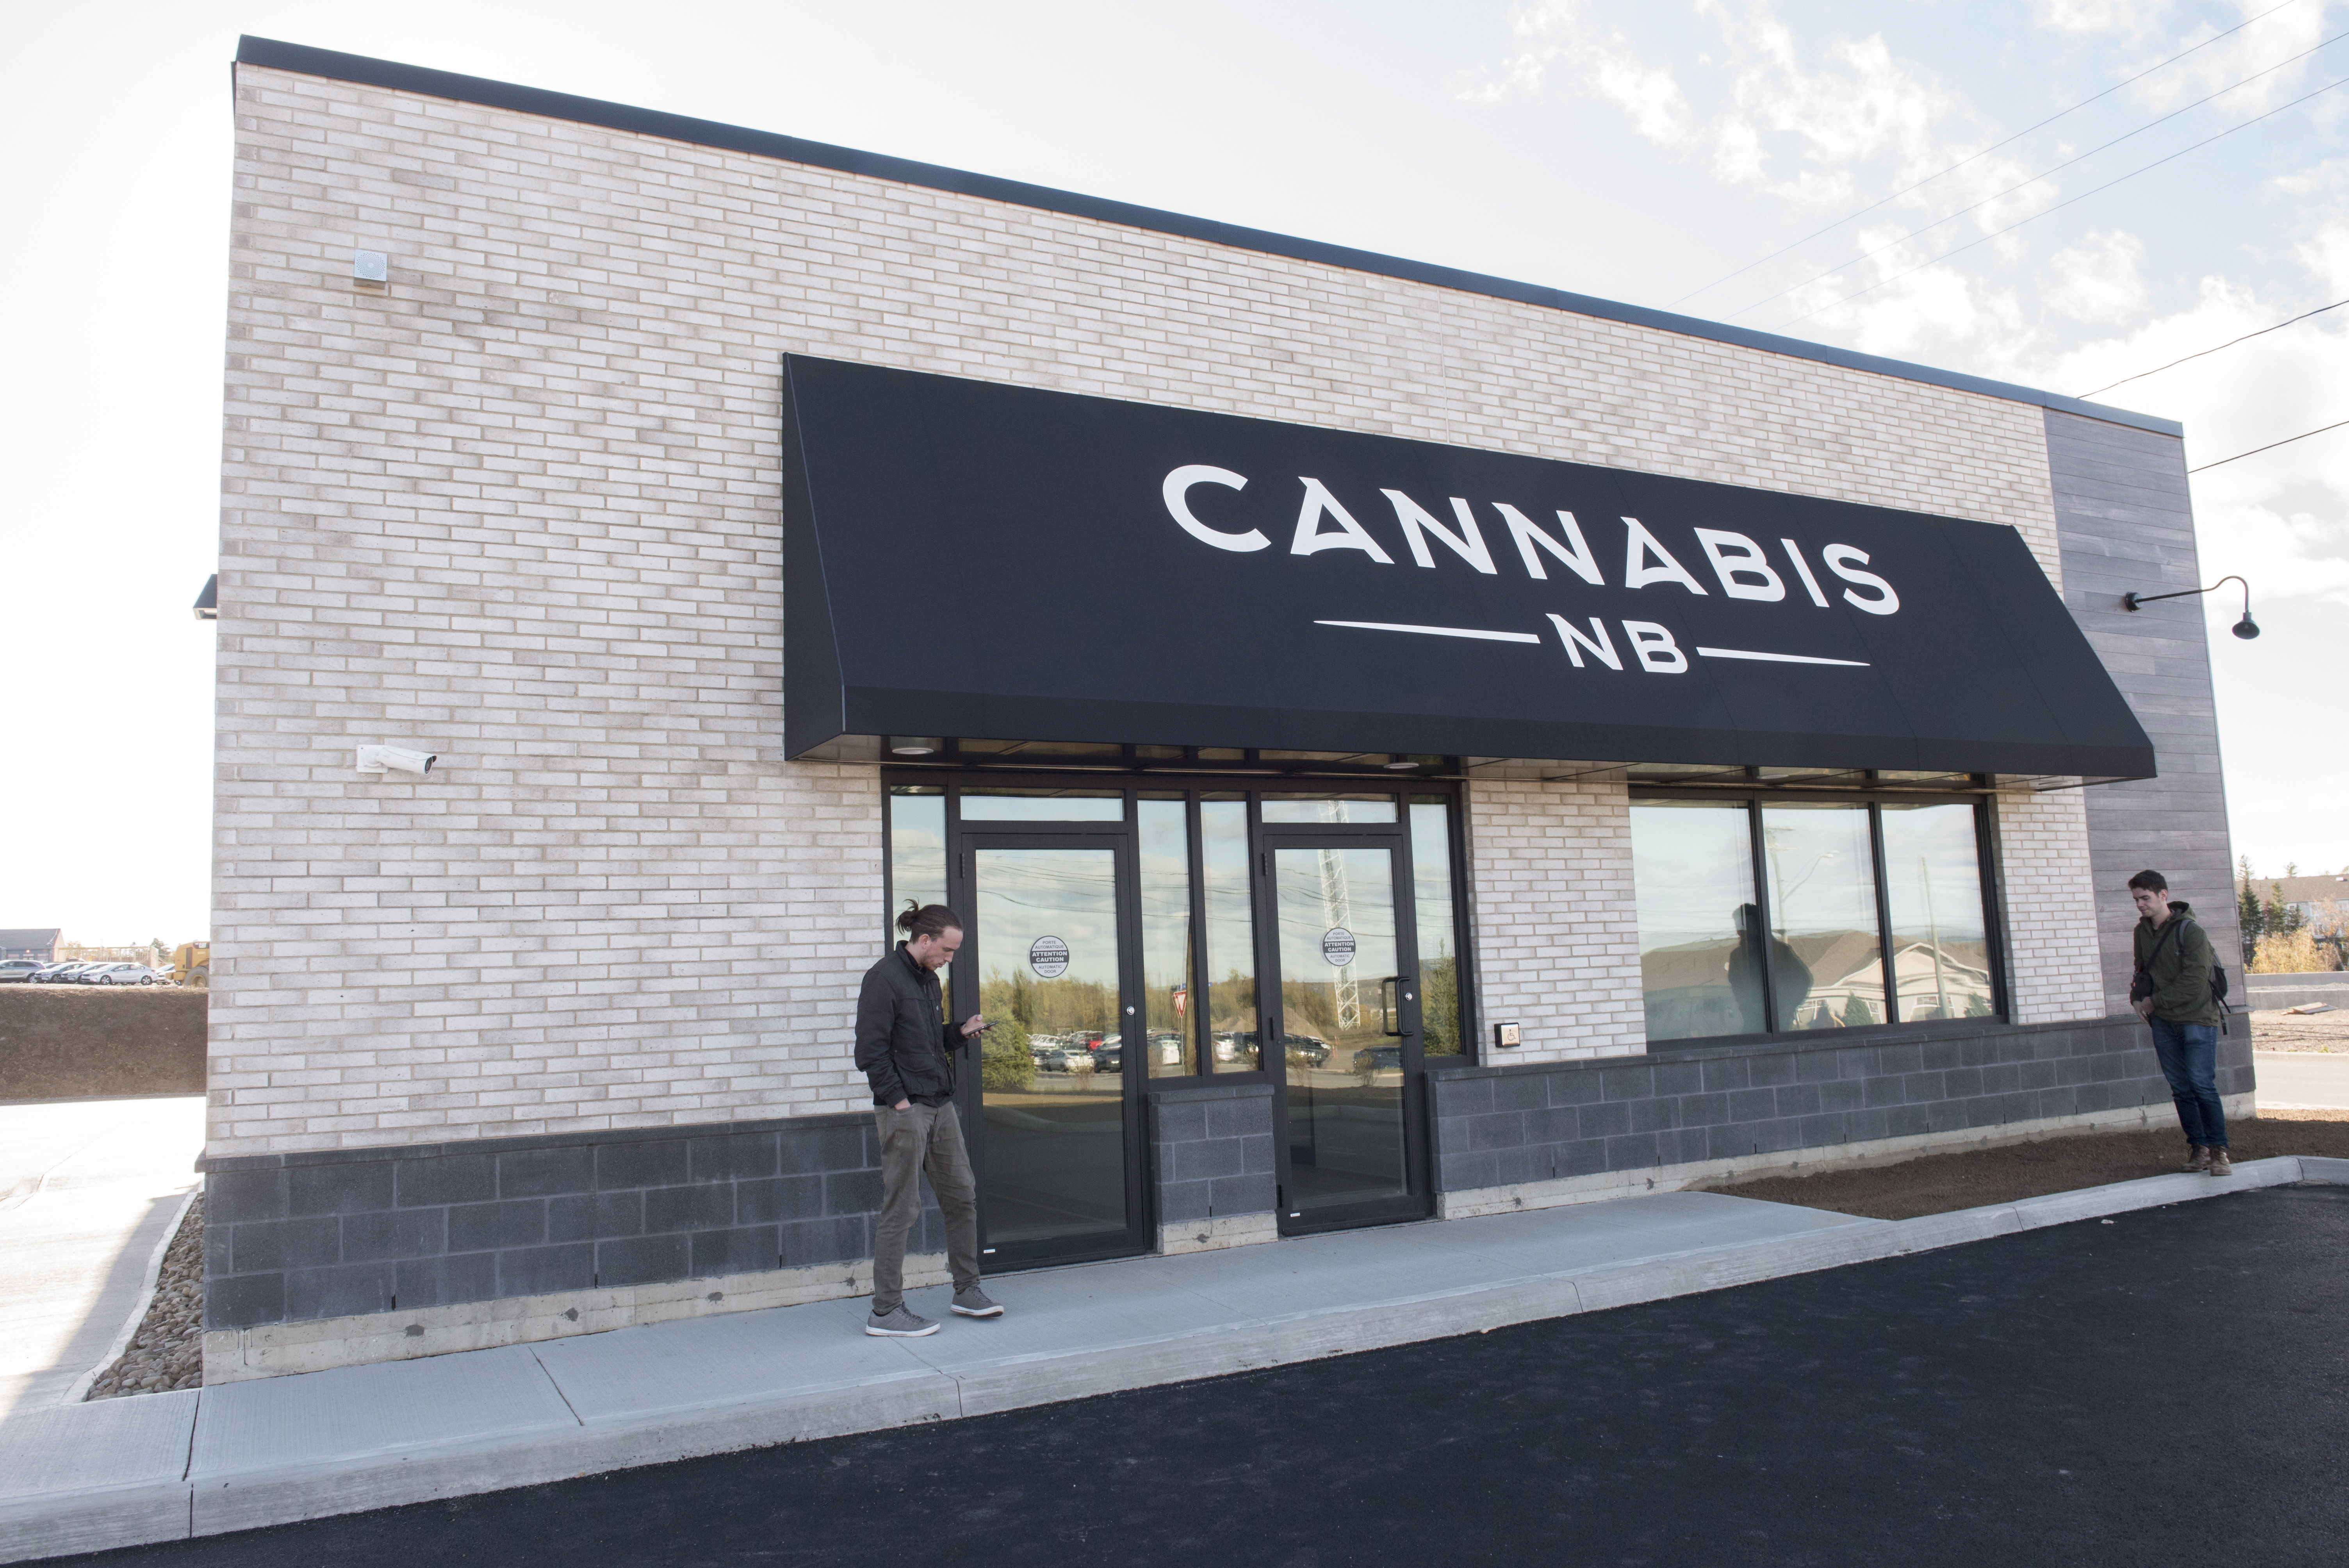 A Cannabis NB retail store in Fredericton, New Brunswick, on Oct. 16,